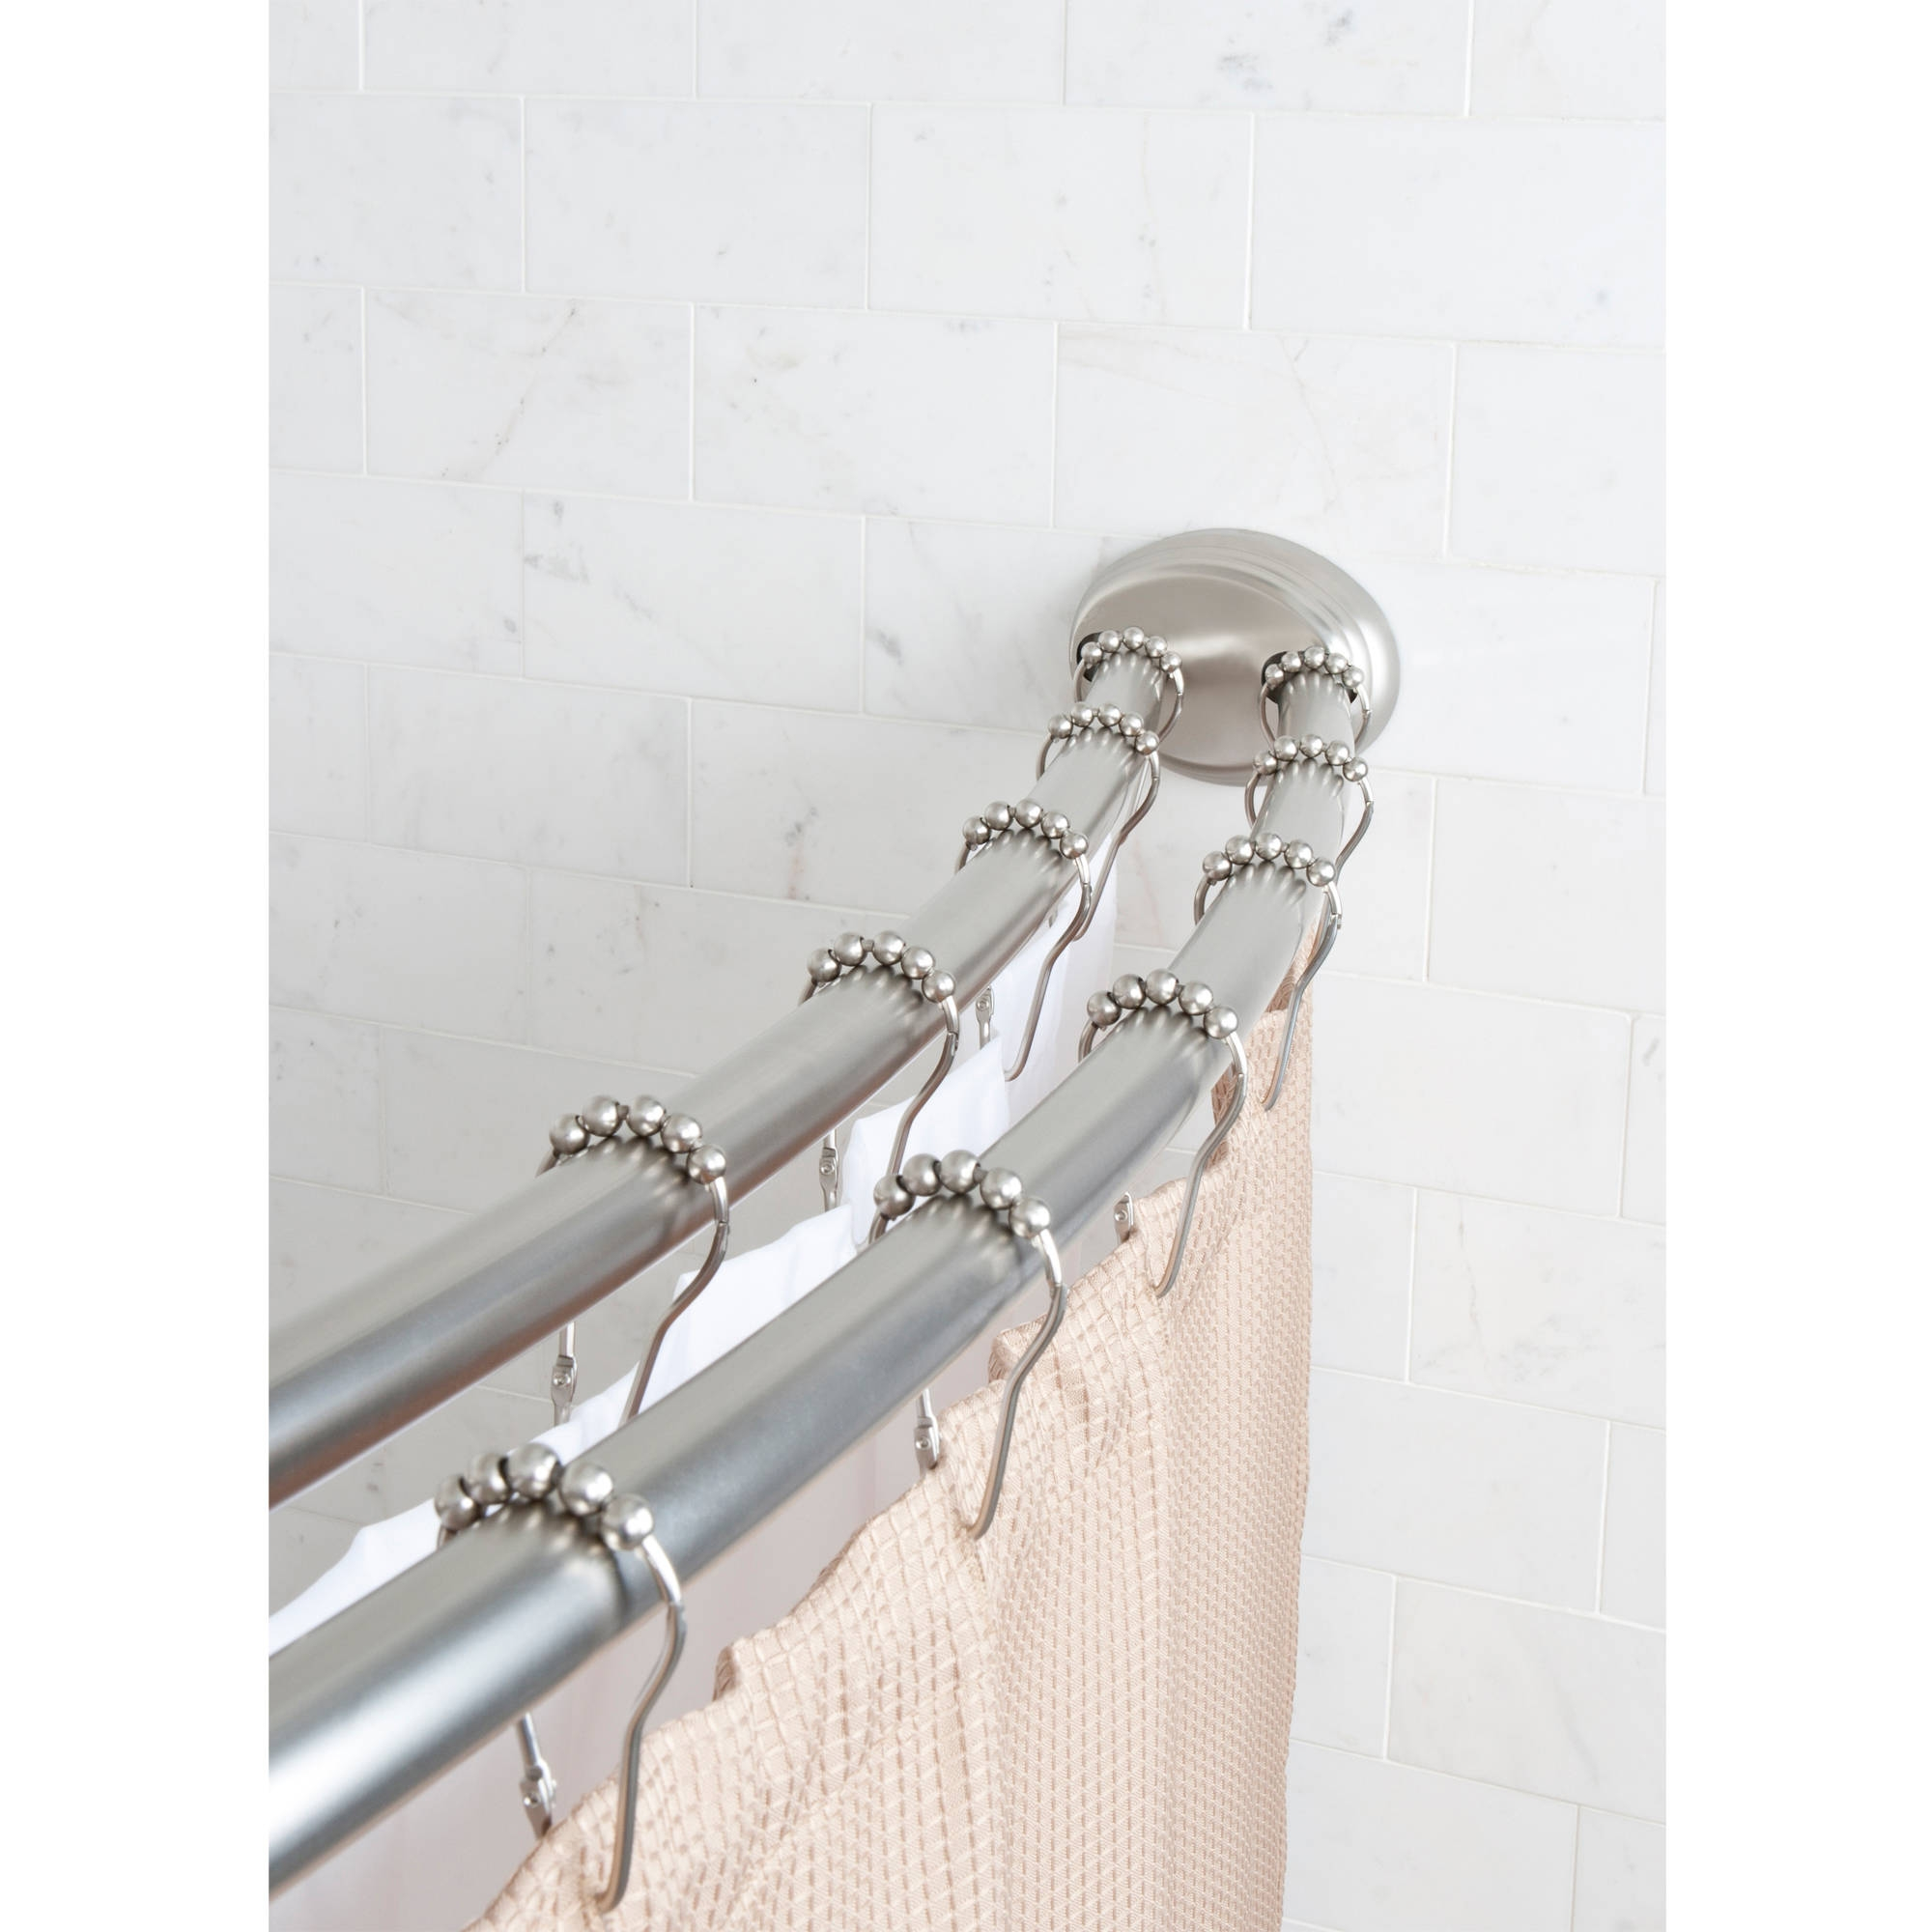 Small Curved Shower Curtain Rod | Curved Curtain Rods | Double Curved Curtain Rod